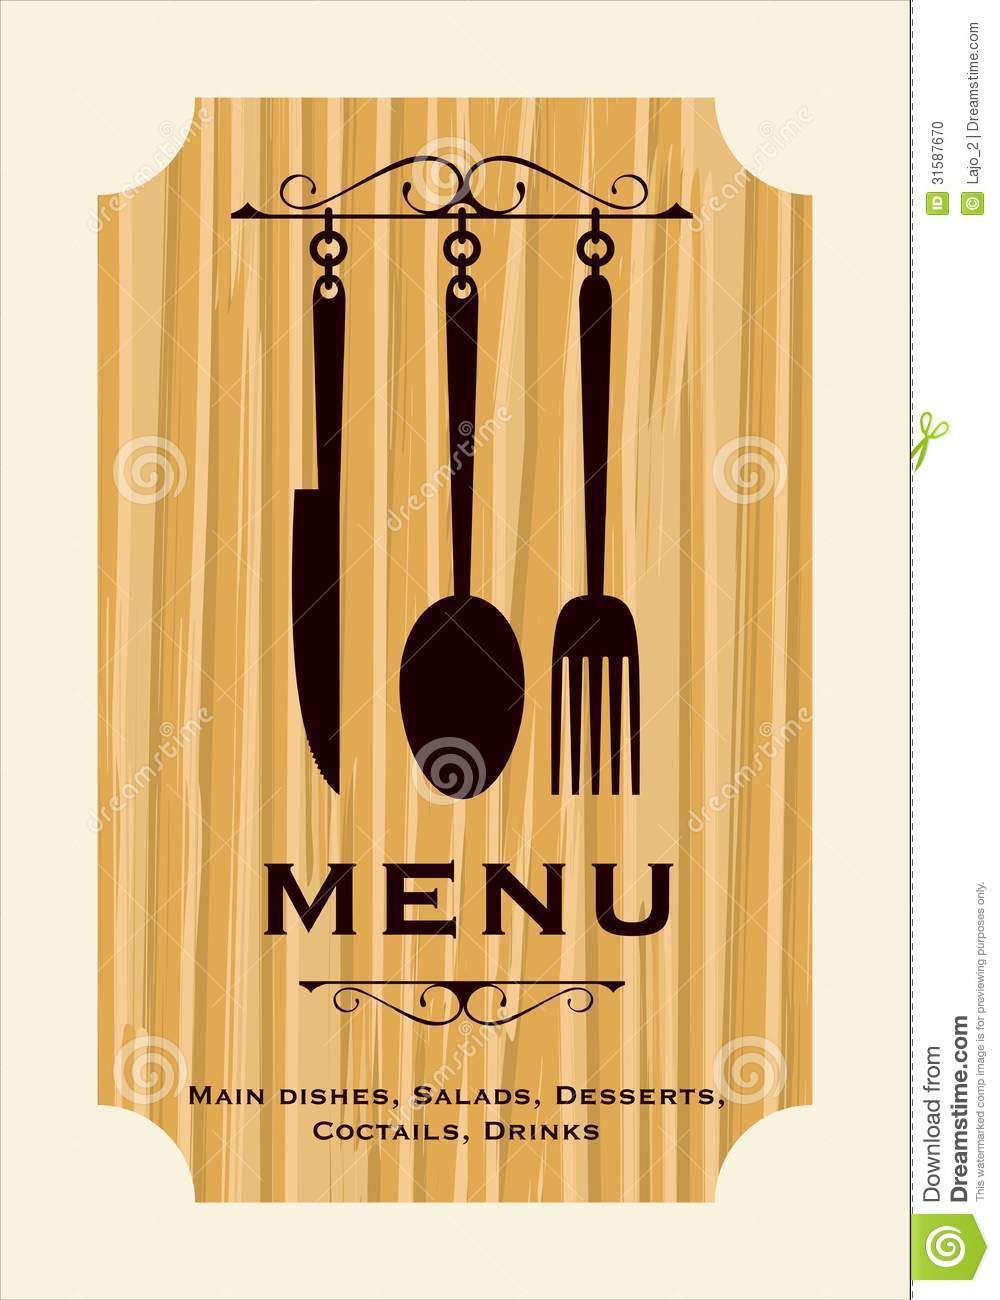 Restaurant Menu Design Stock Photo - Image: 31587670